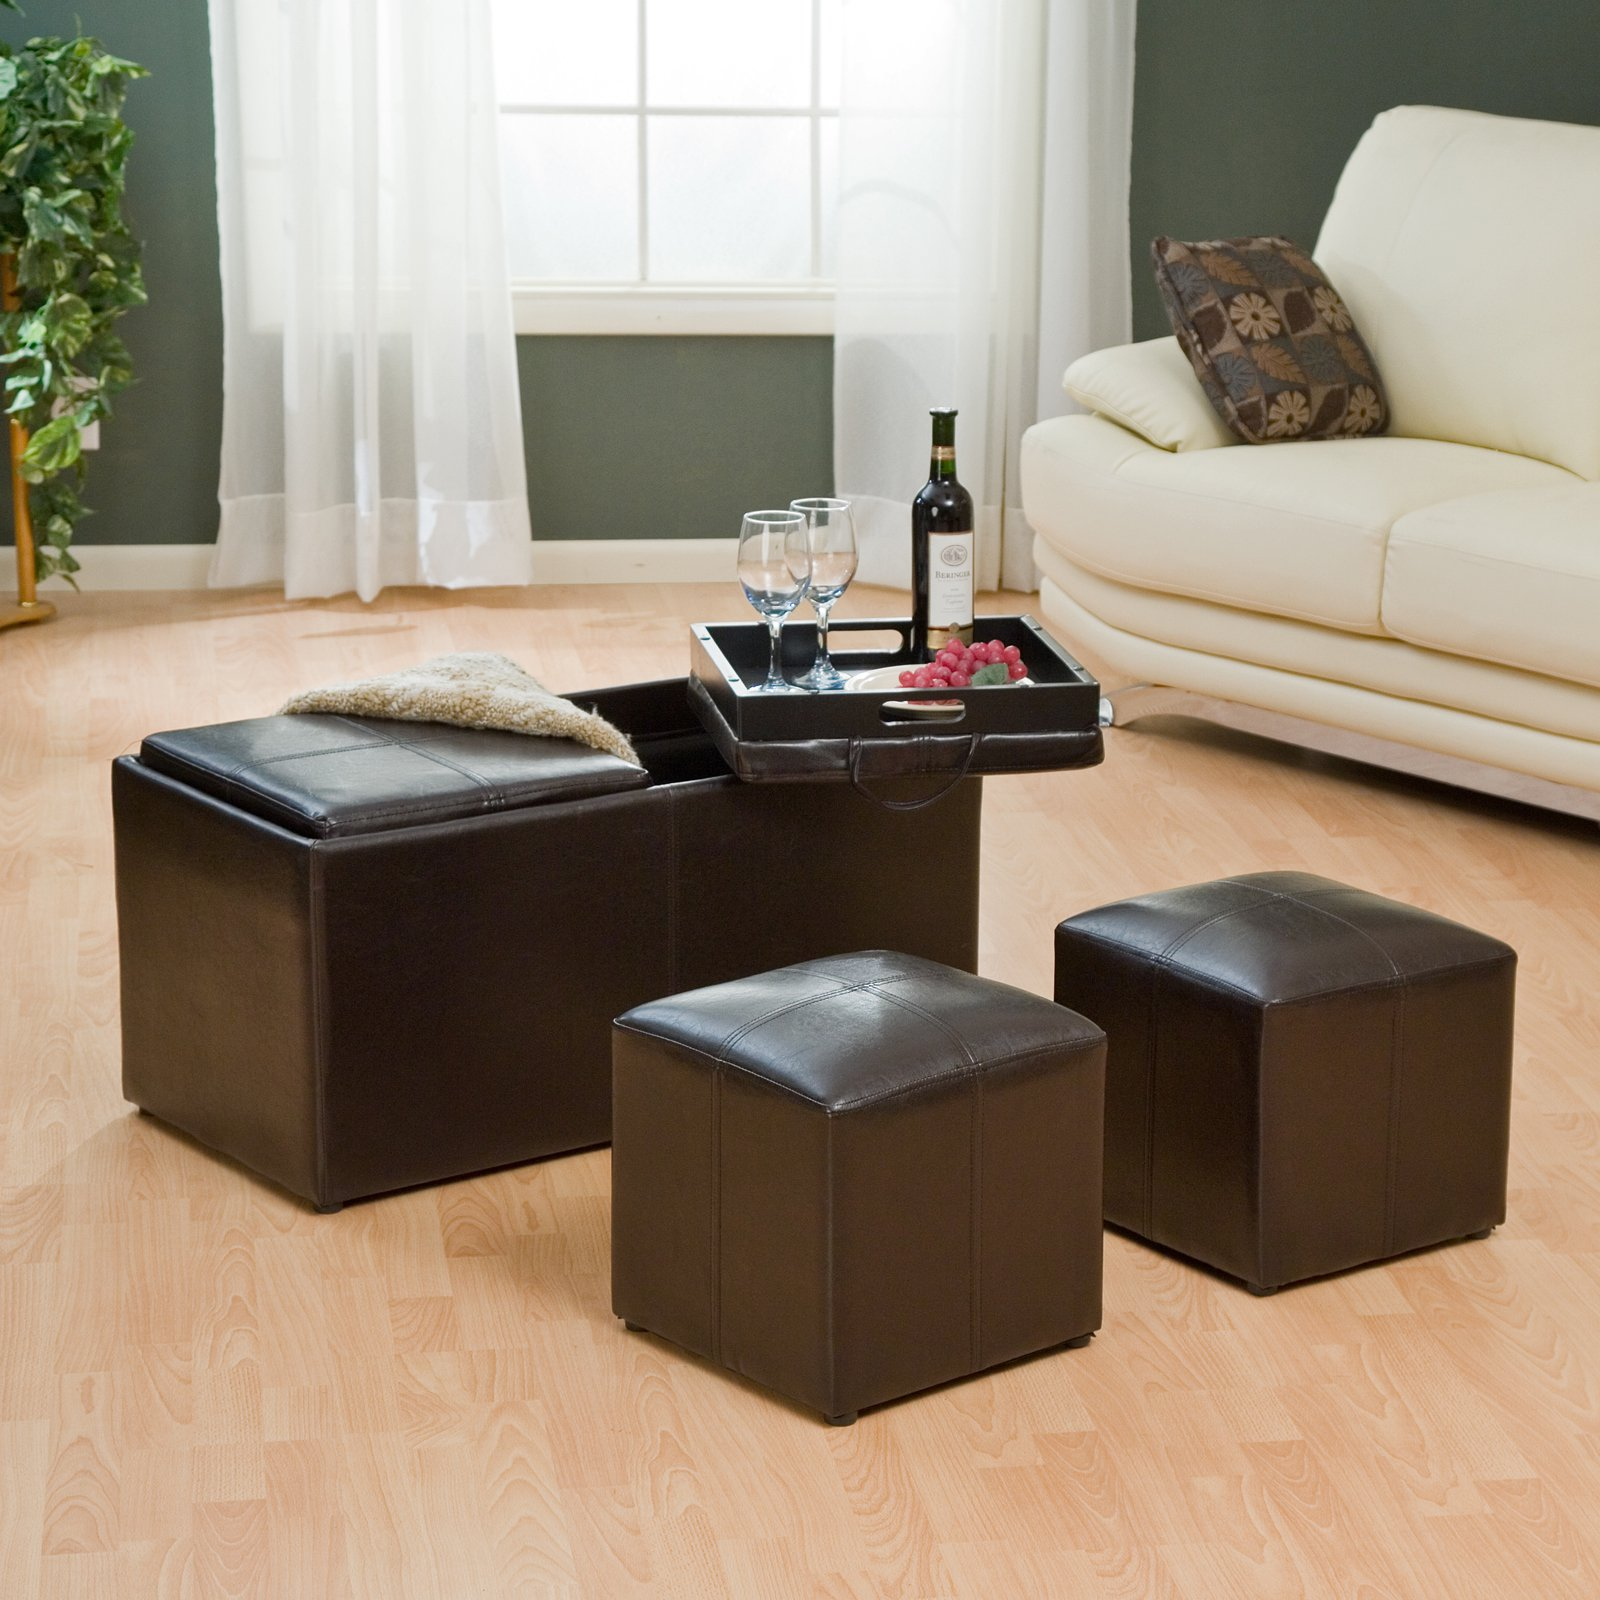 Black Large Ottoman Tray On Black Leather Ottoman On Wooden Floor Plus White Sofa Plus Cushion Before The Grey Wall With White Window Plus White Curtain For Living Room Decor Ideas